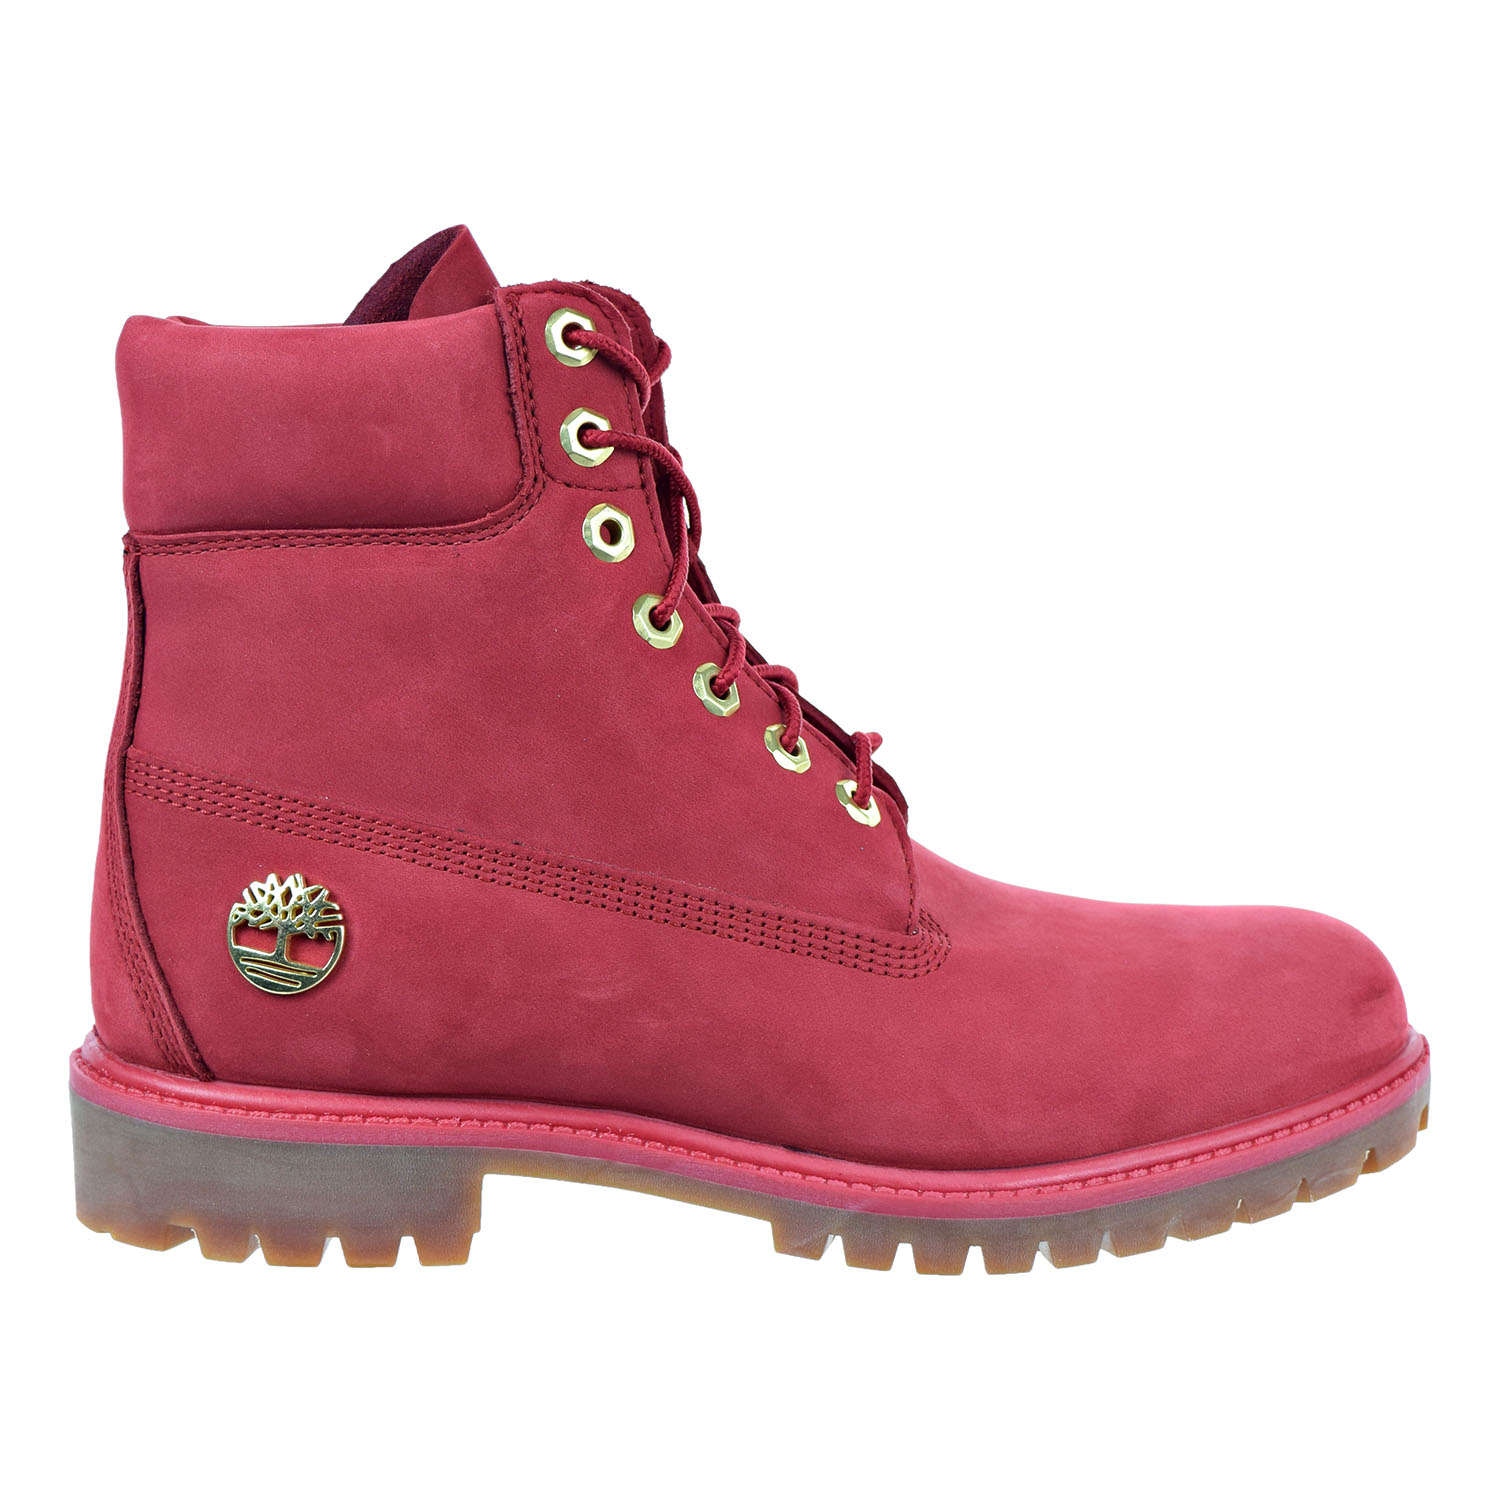 Timberland 6 Inch Premium Waterproof Men's Boots Redtb0a1jlt by Timberland